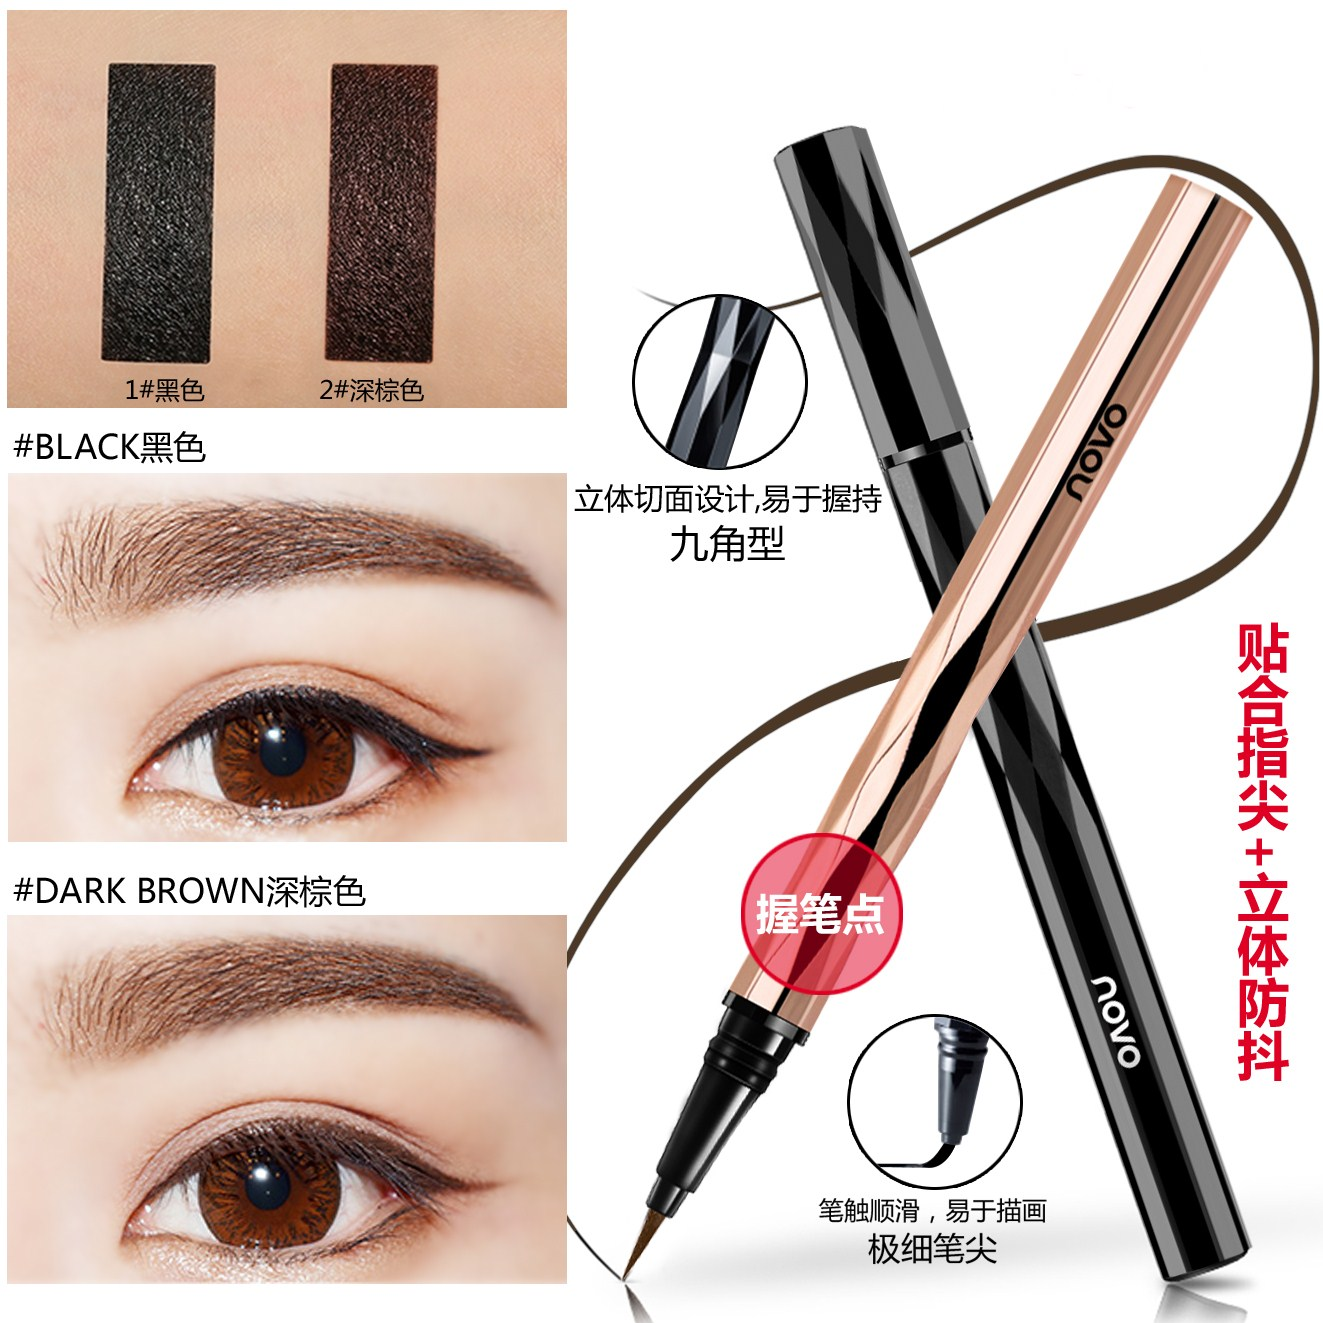 Eyeliner Pen, brown, waterproof, sweat proof, non staining, long lasting, no dyed.